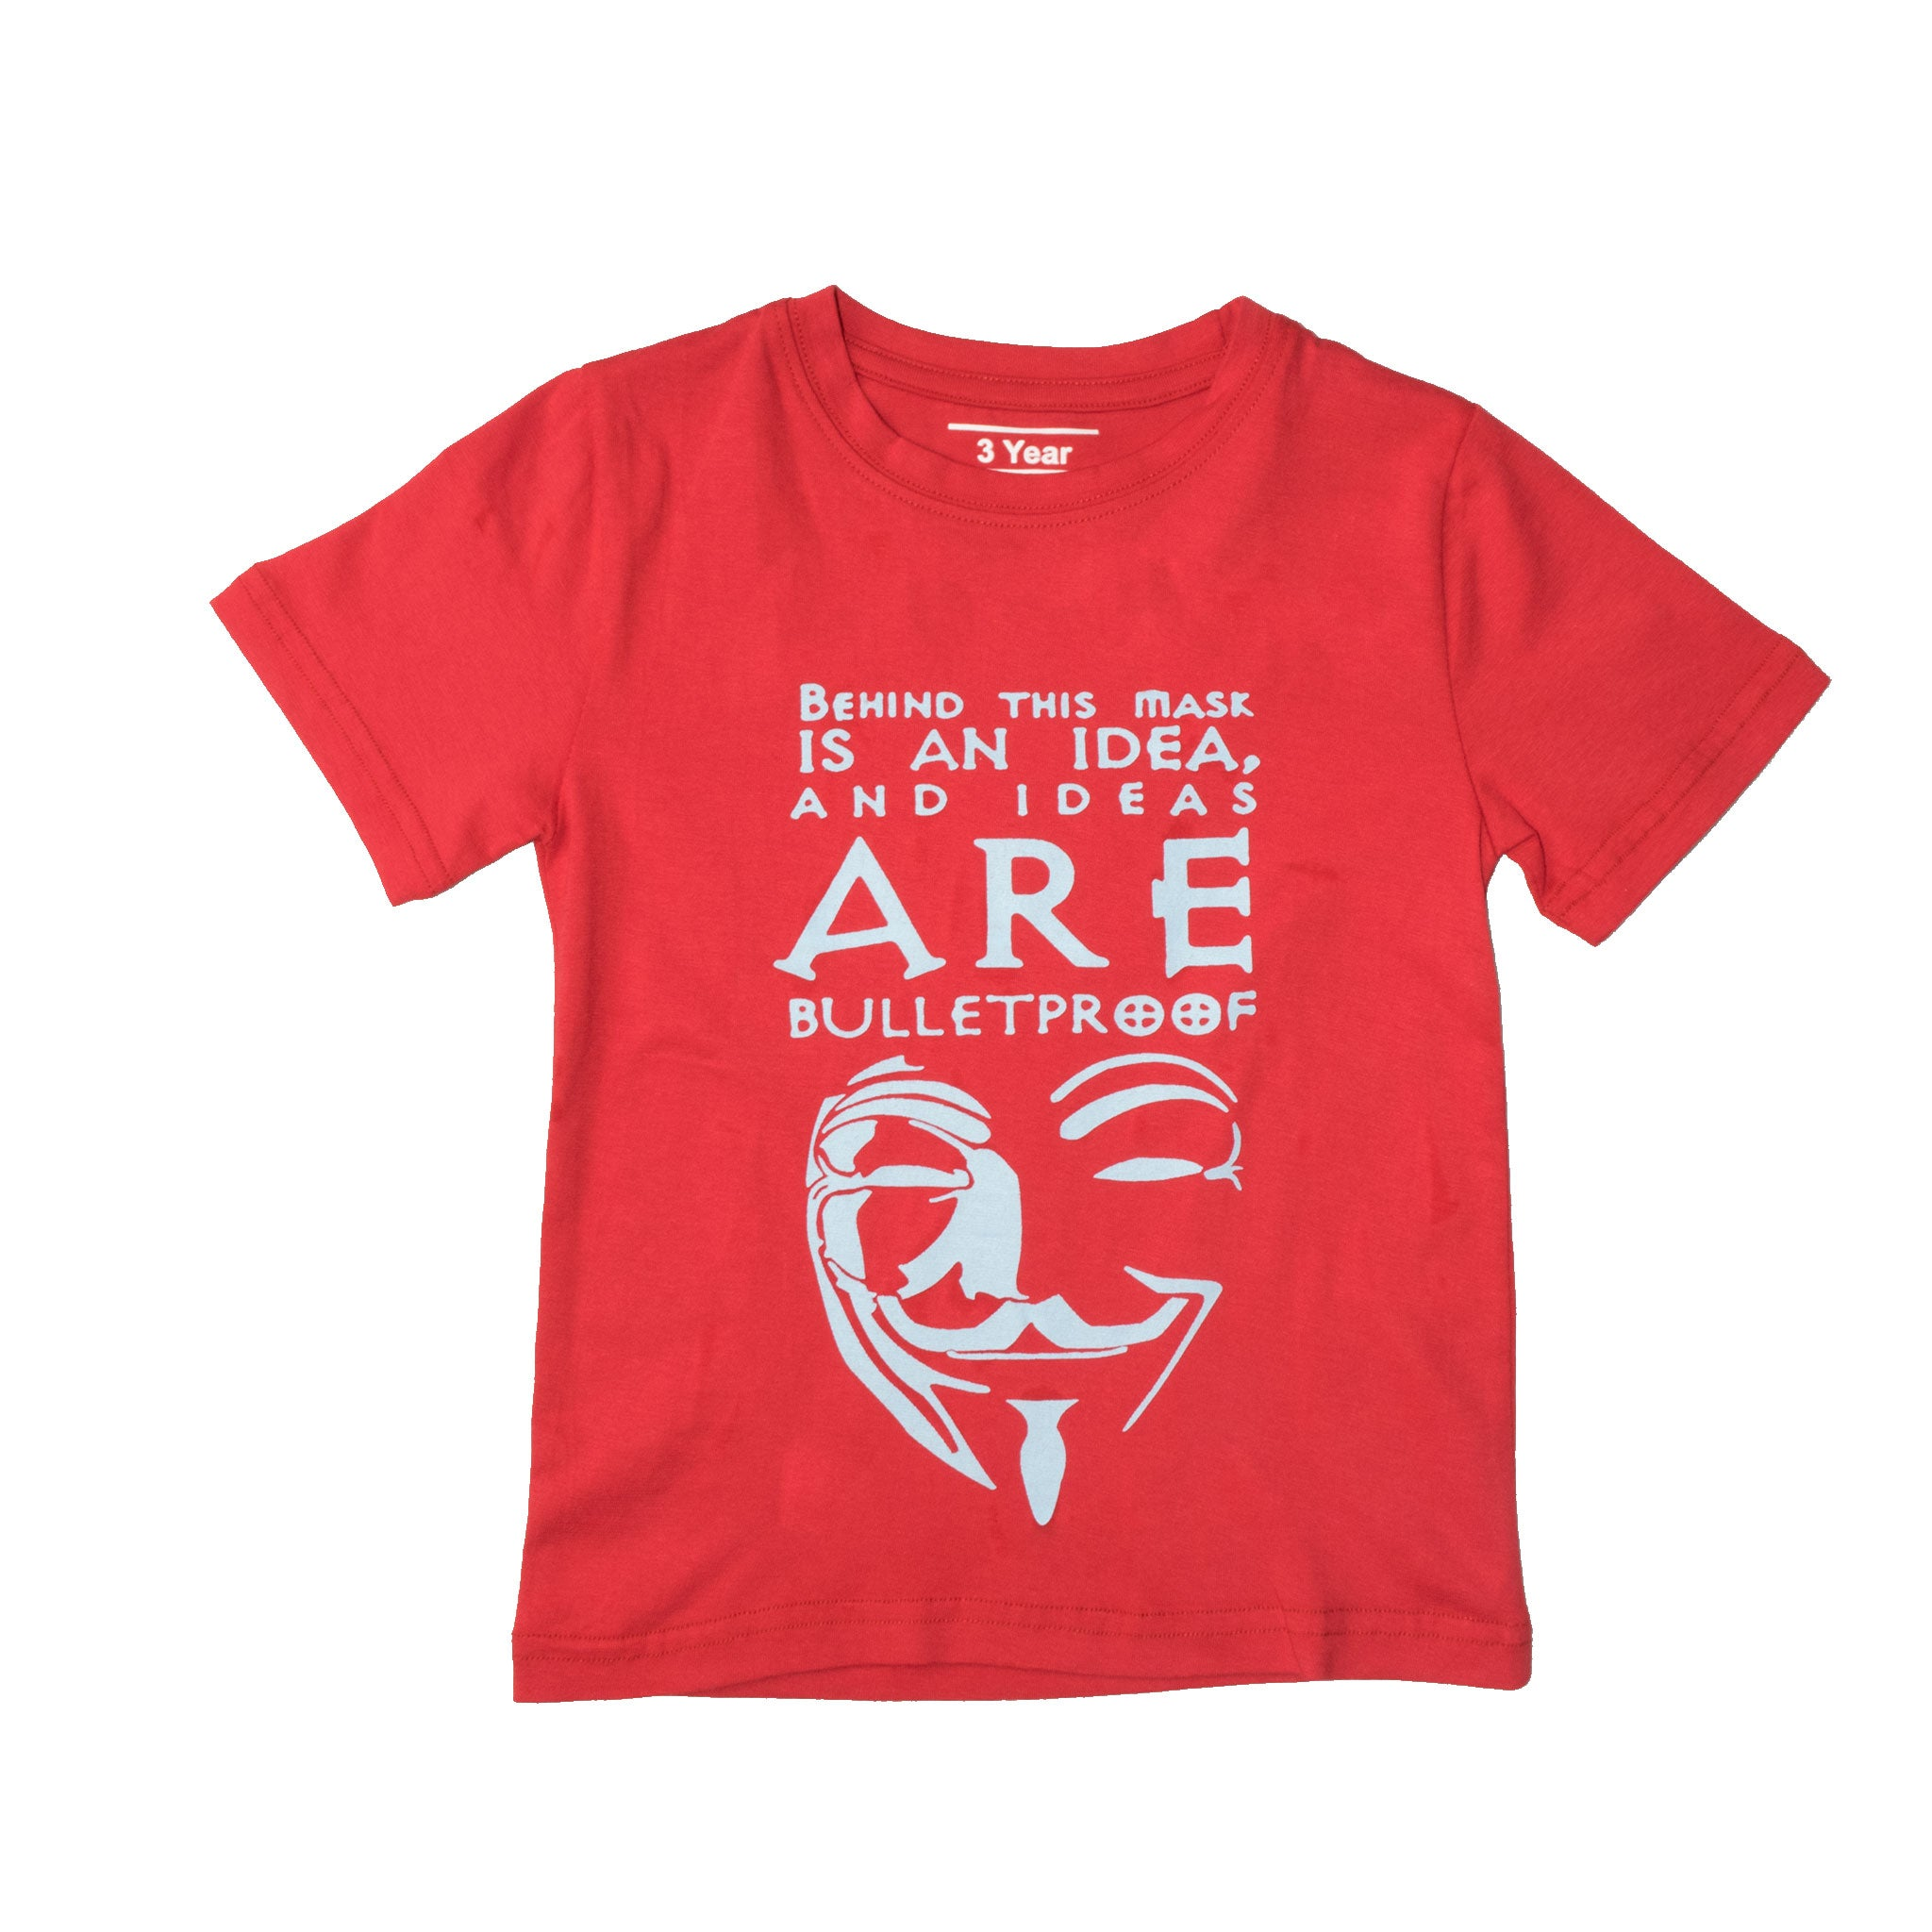 BOY'S S/S GRAPHIC TEE-RED-SSSS20KB-1112 - Export Mall